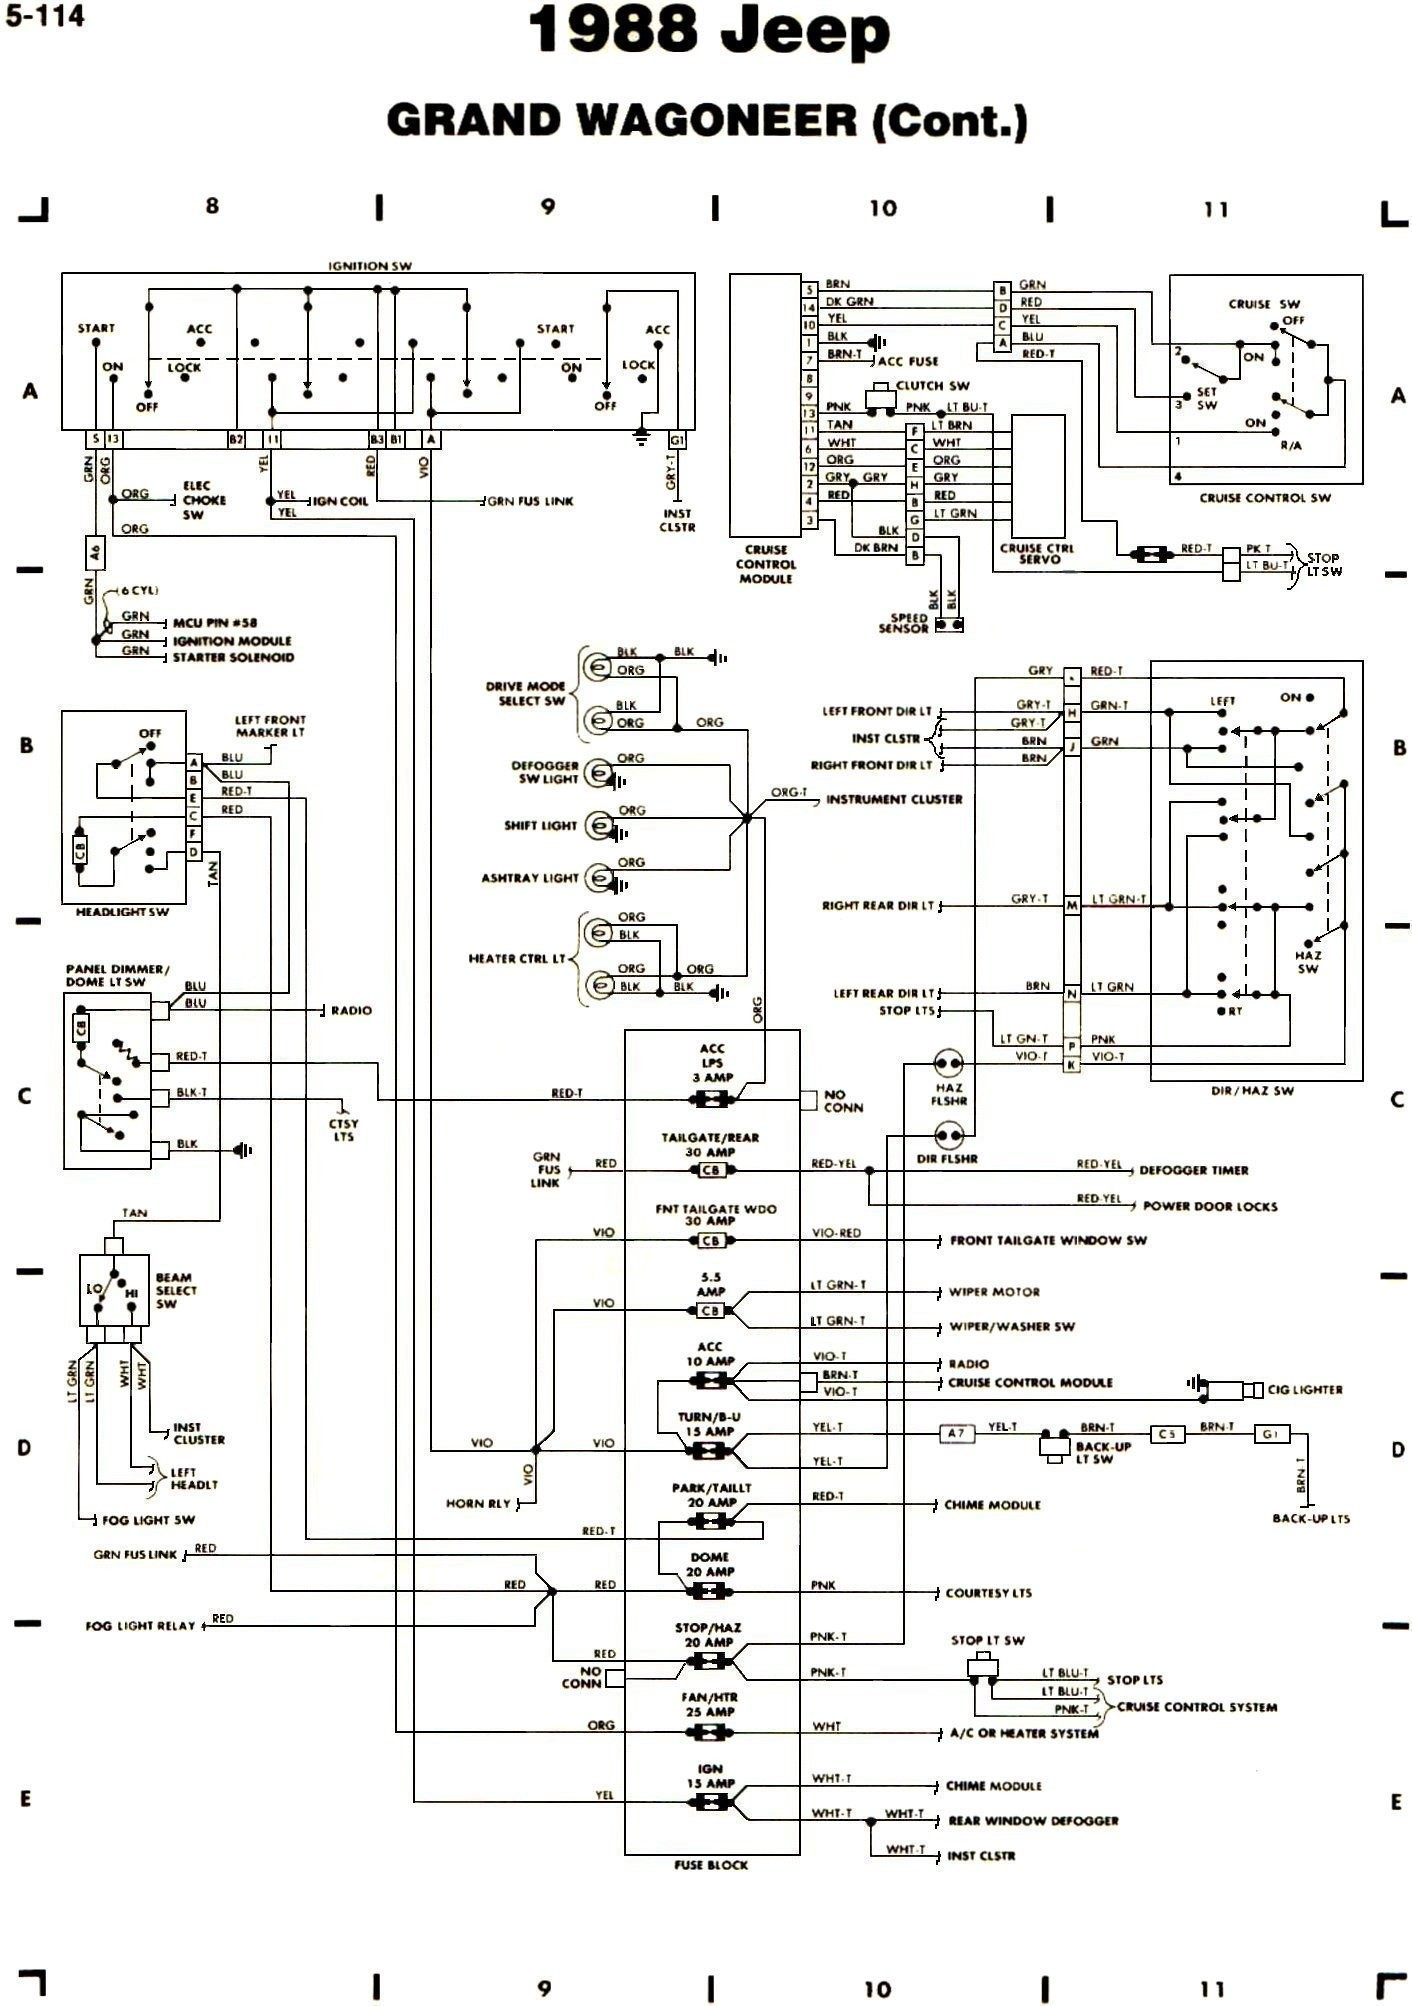 99 Sterling Wiring Diagram | Wiring Diagram on sterling air switch diagrams, sterling trucks electrical diagrams 2002 powertrain, sterling truck engine, sterling truck dimensions, sterling truck seats, sterling truck specifications, sterling truck wiper diagrams, sterling truck specs, sterling truck accessories, sterling truck suspension, sterling truck logo, sterling truck abs, sterling truck brochures, sterling truck air schematic, sterling truck heater system, new holland parts diagrams, sterling heater wiring schematic, sterling truck heater diagram, sterling truck models, sterling truck cooling system,